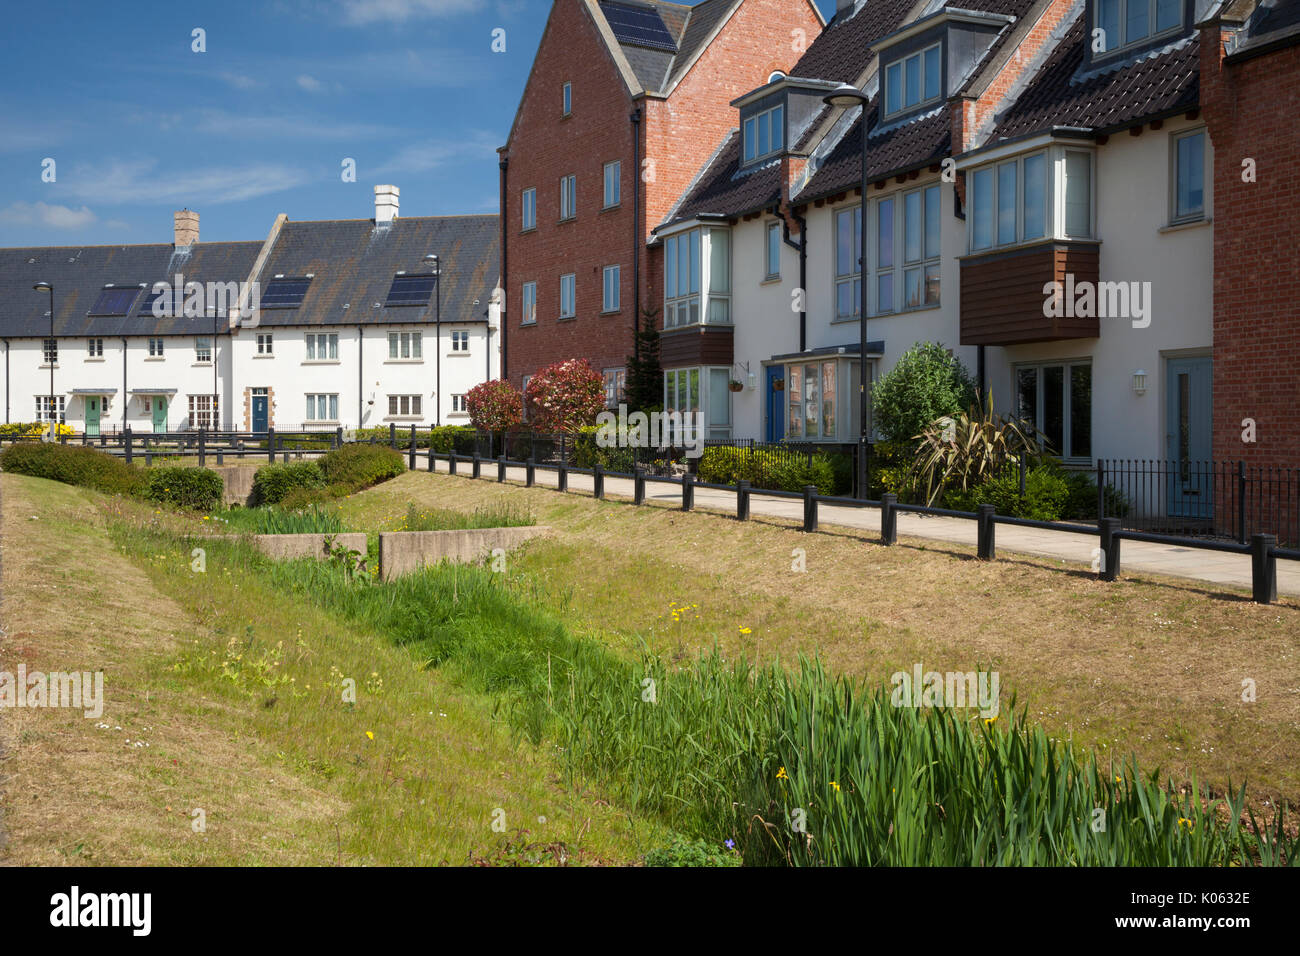 Part of the mixed housing styles to be found within the contemporary eco-design development at Upton in Northampton, England. - Stock Image